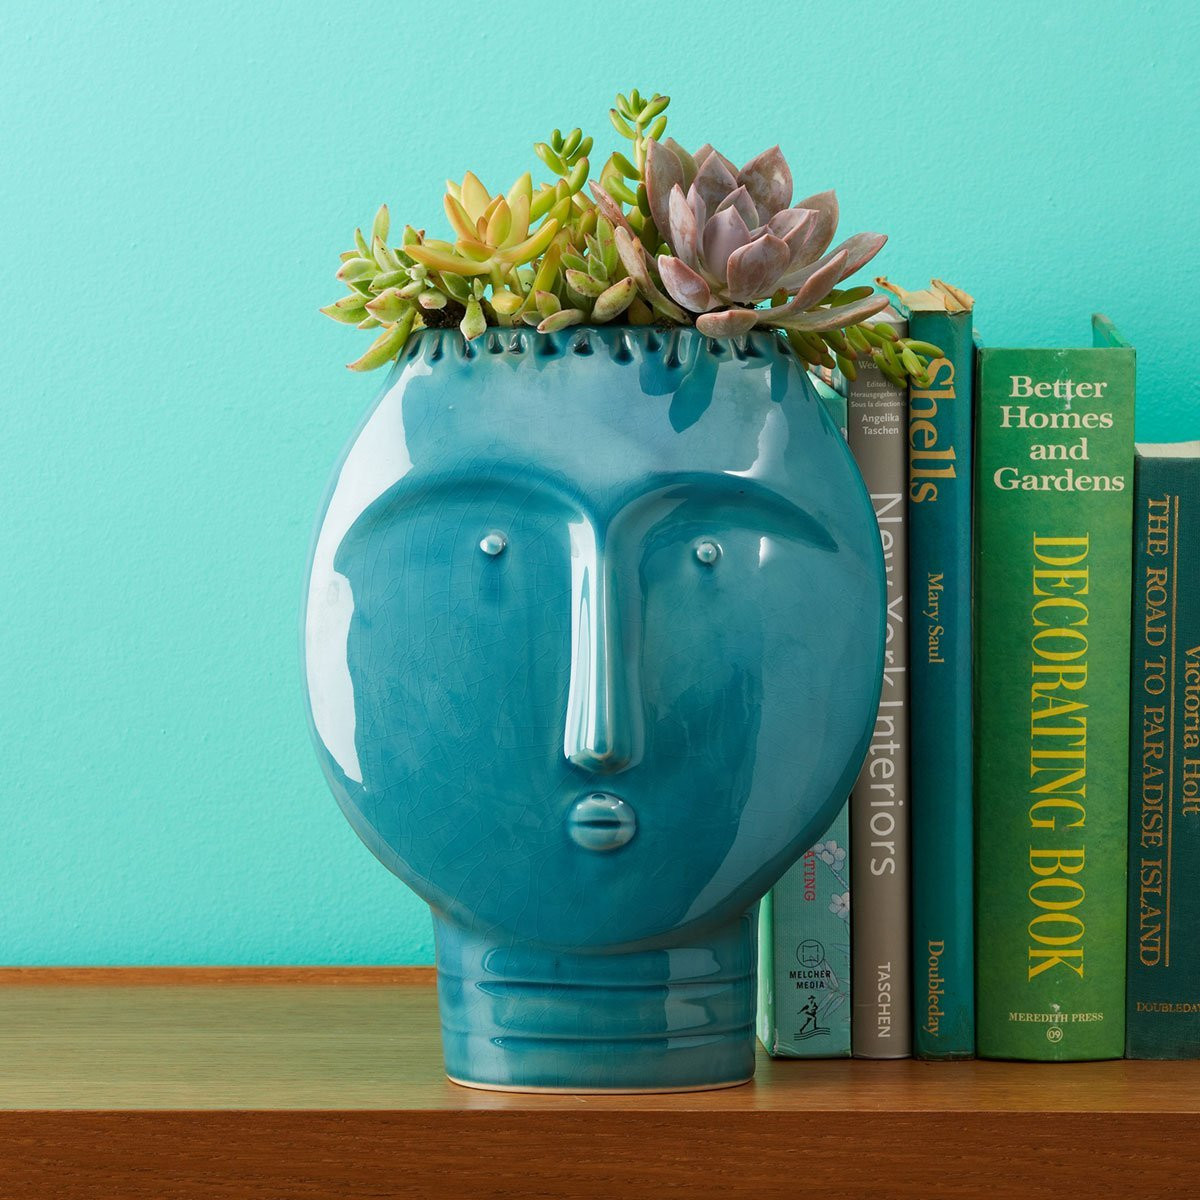 tozai home vase of buy 11 turquoise rustic ceramic cutout cylinder zen outdoor candle within tozai home frida retro turquoise vase ceramic size 8 1 2 w